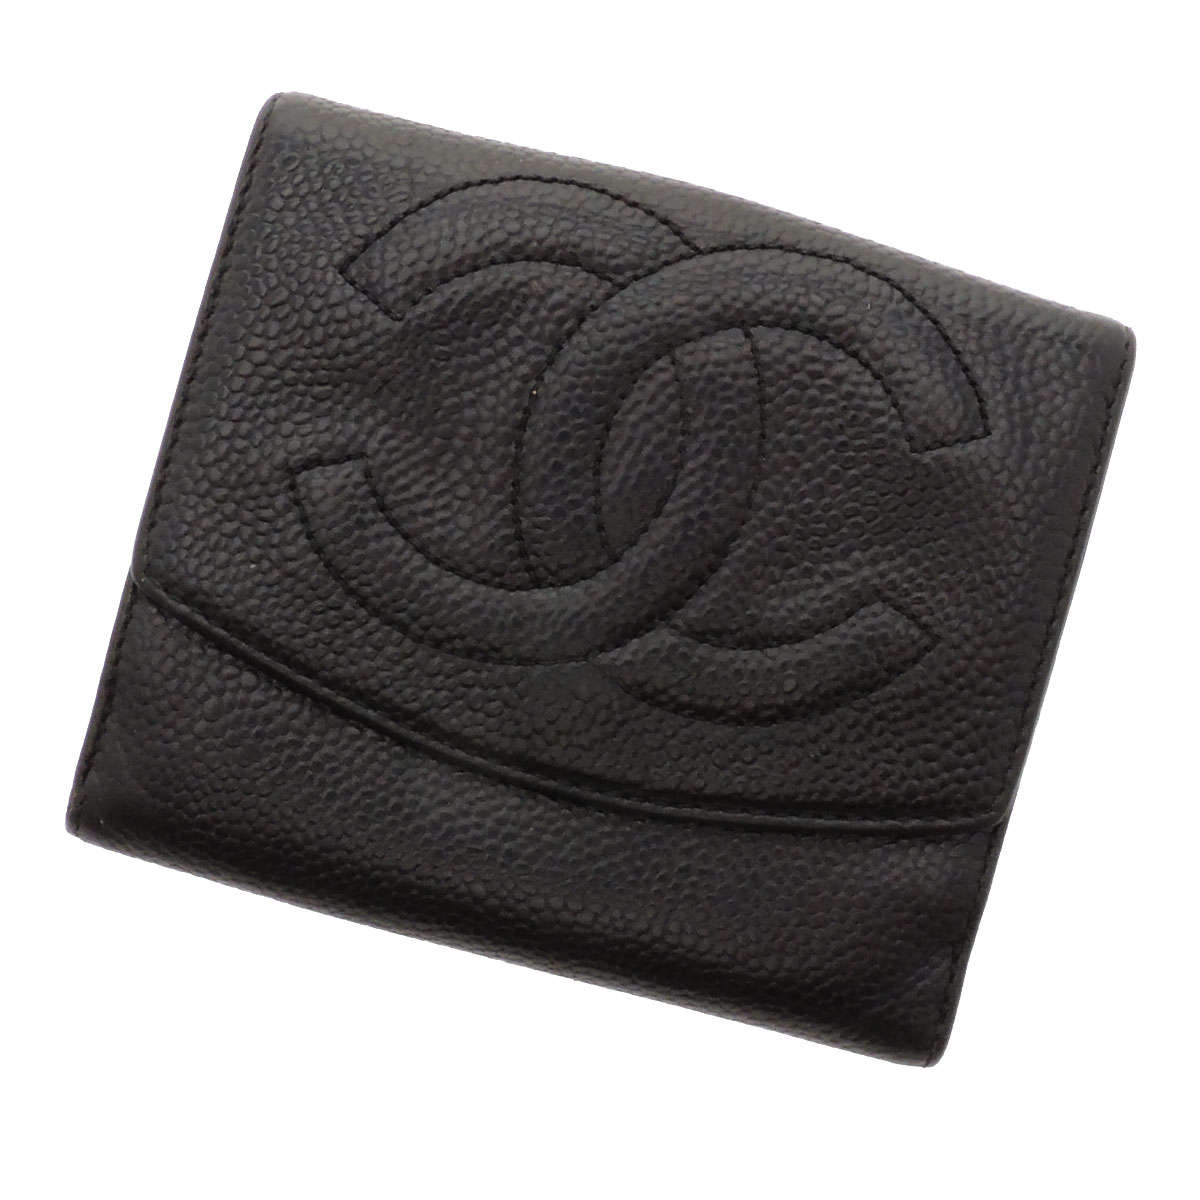 CHANELW hoc two-fold wallets (purses and) caviar skin ladies